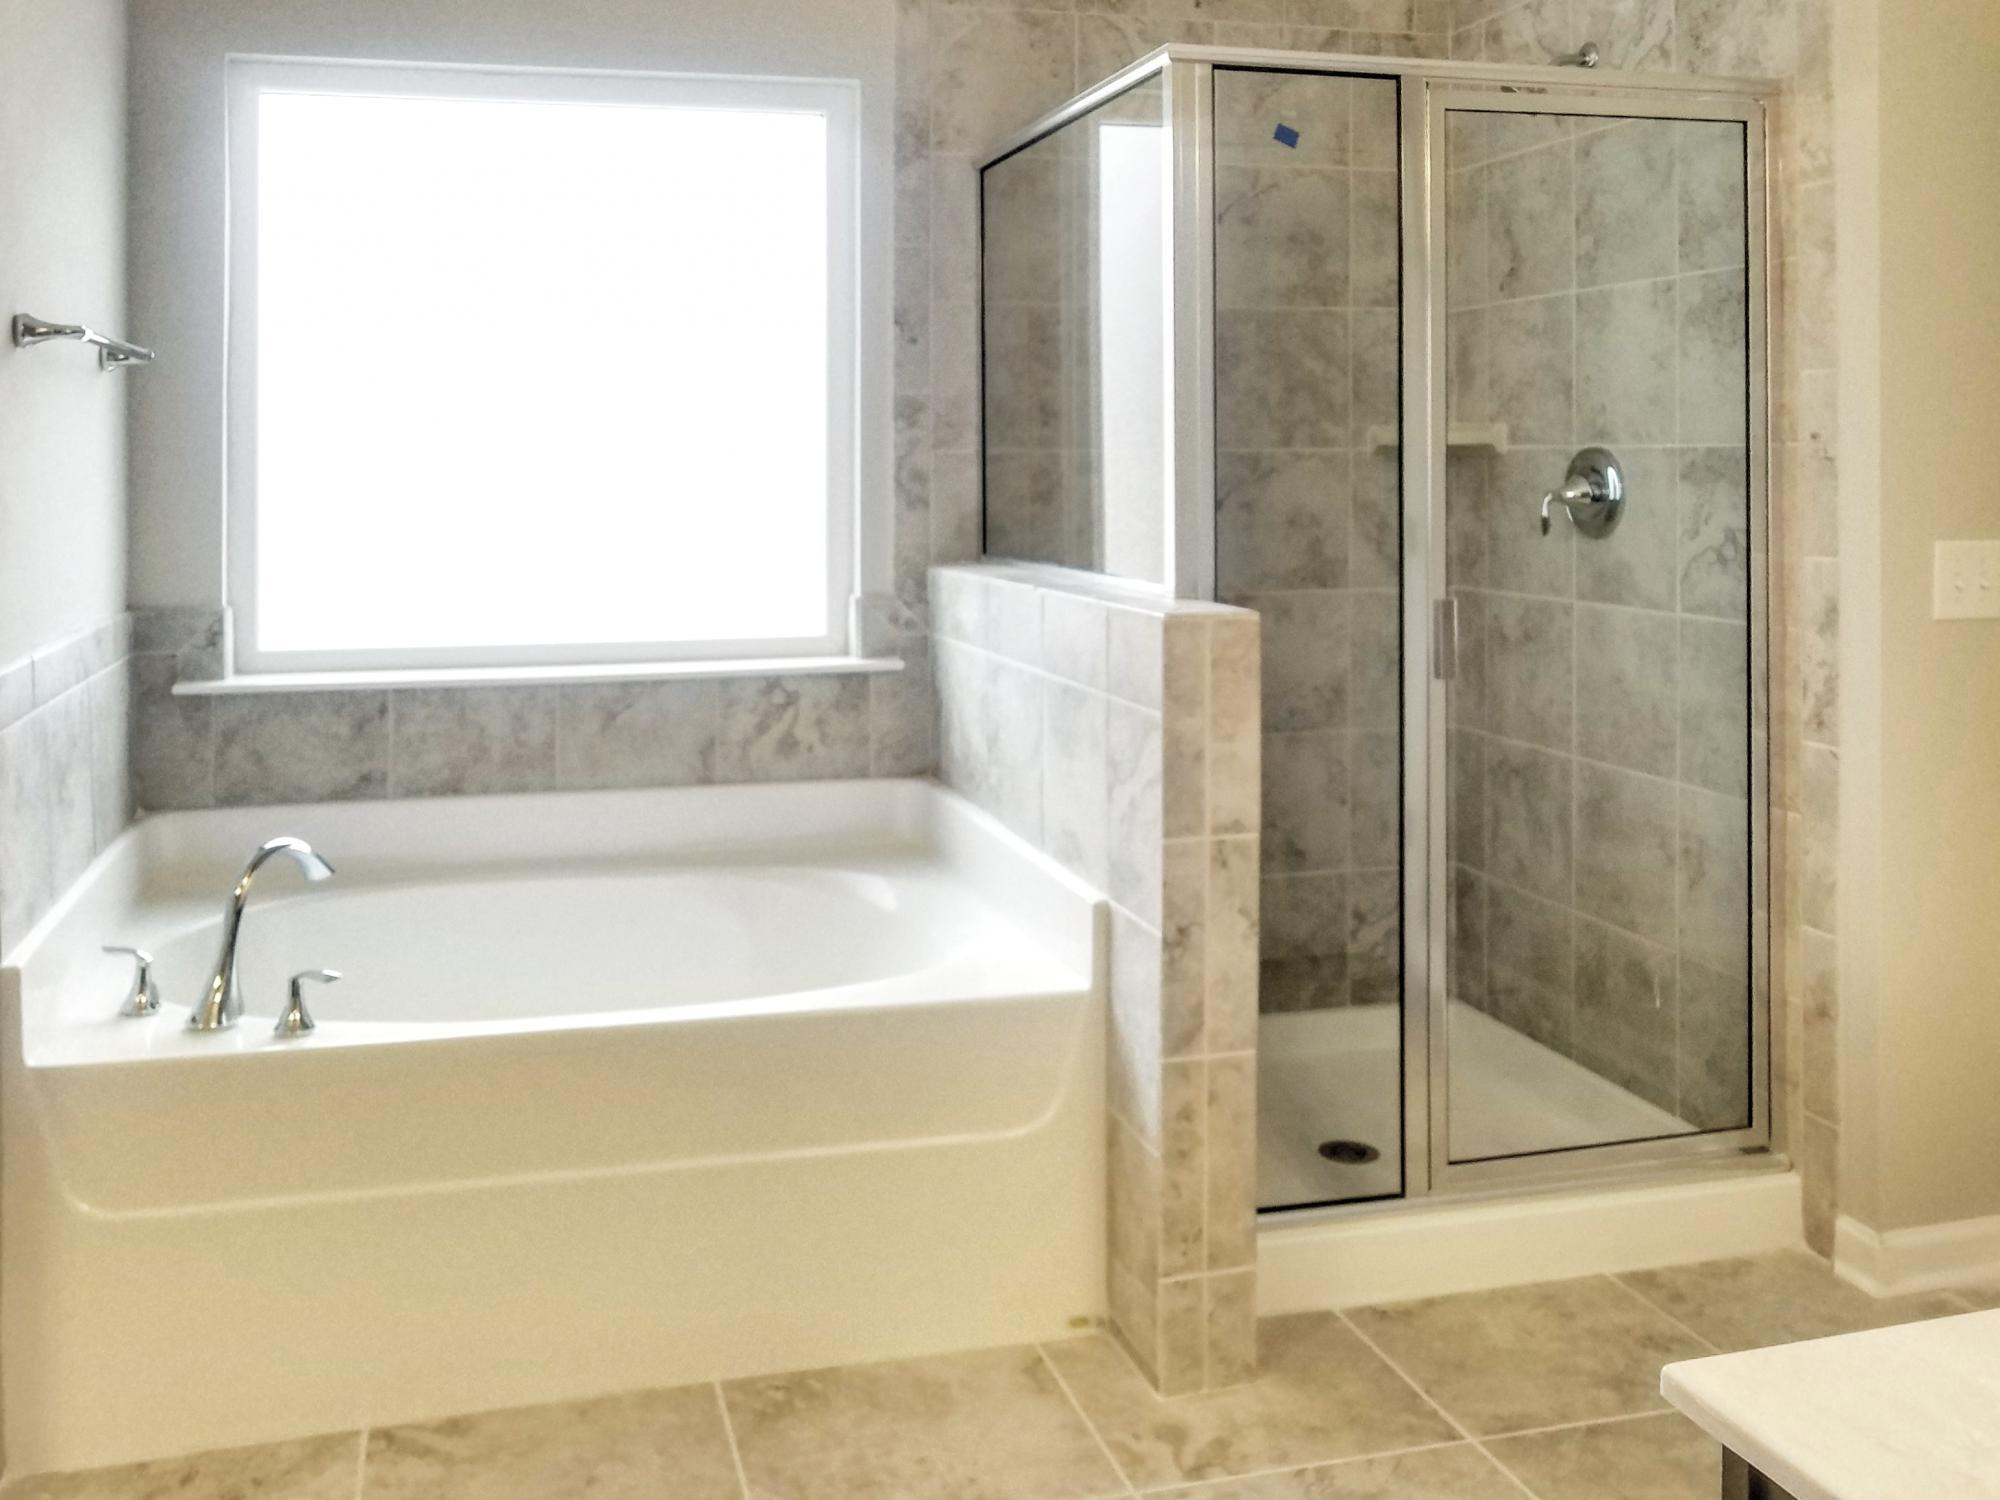 Bathroom featured in the Montgomery XL By Konter Quality Homes in Savannah, GA